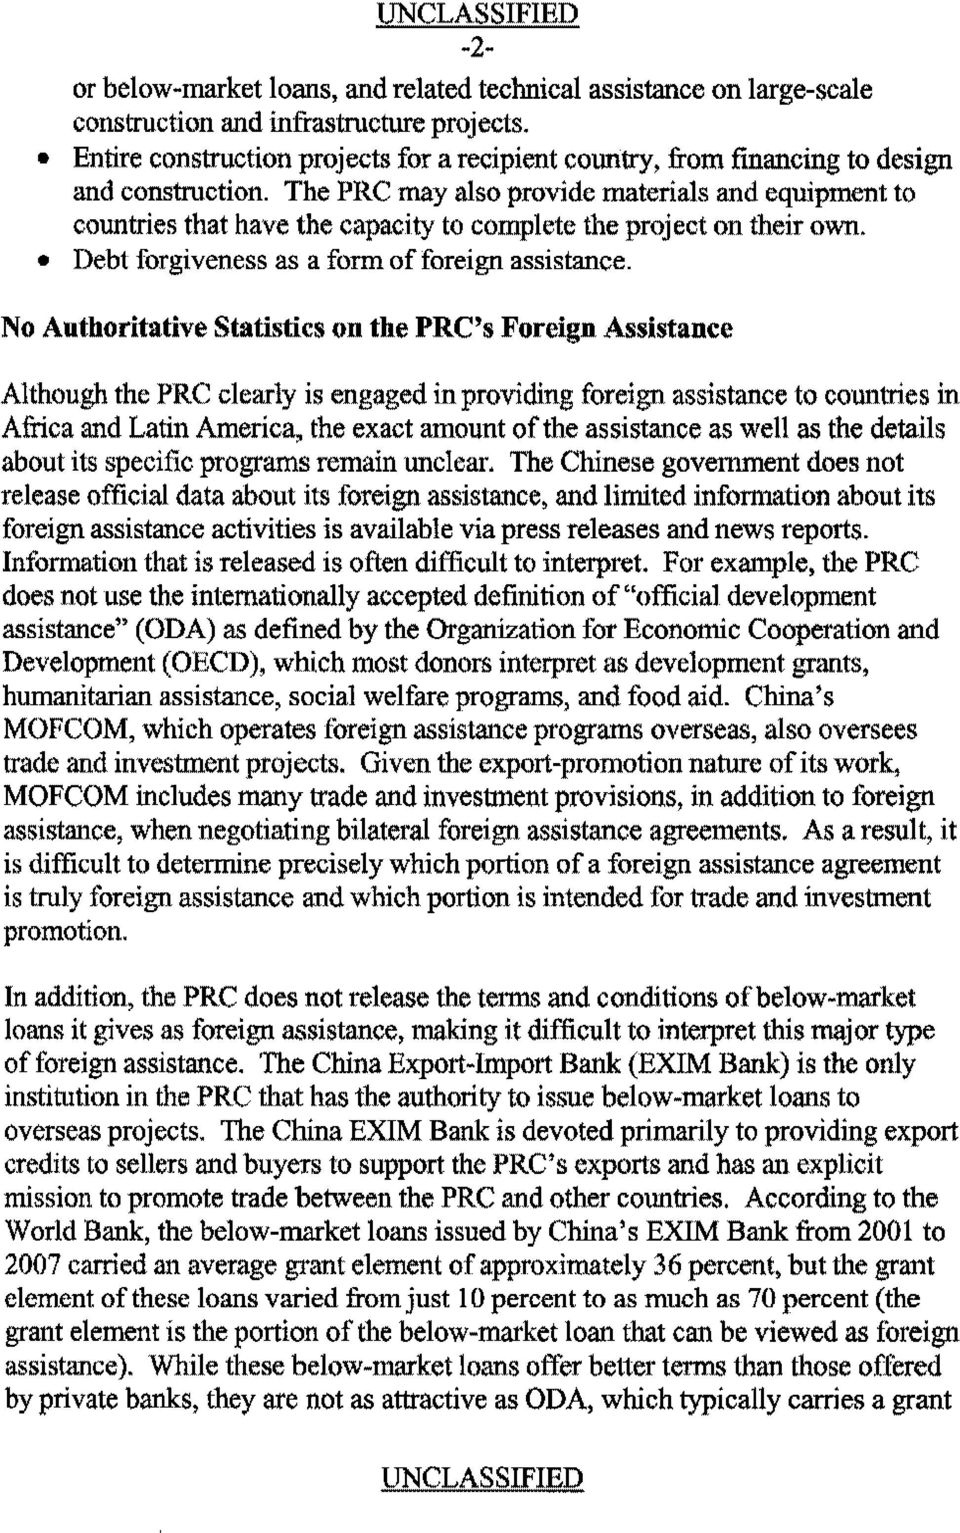 The PRC may also provide materials and equipment to countries that have the capacity to complete the project on their own. Debt forgiveness as a form of foreign assistance.